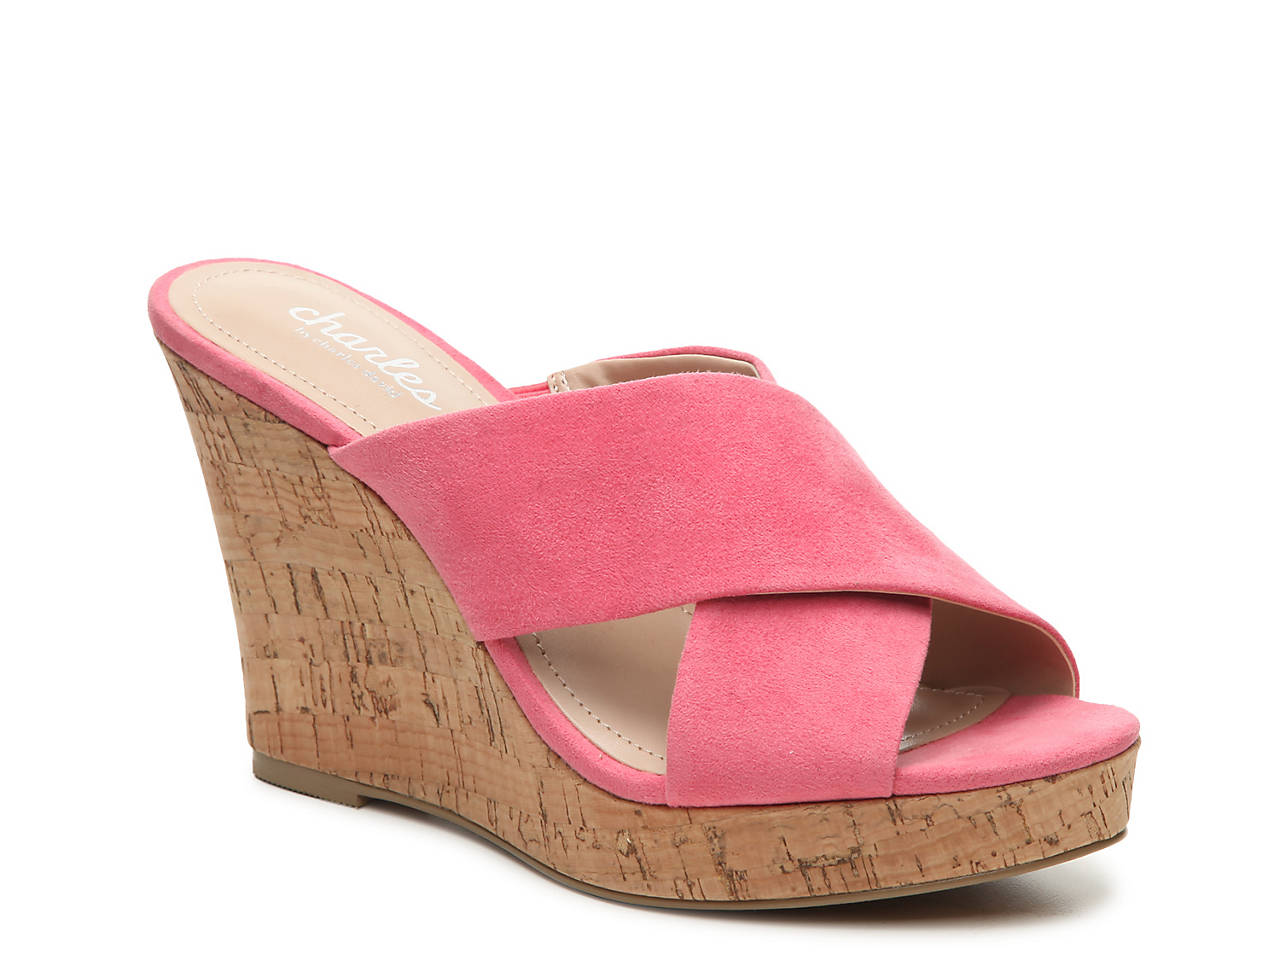 7bfc49a6f5f Charles by Charles David Latrice Wedge Sandal Women s Shoes